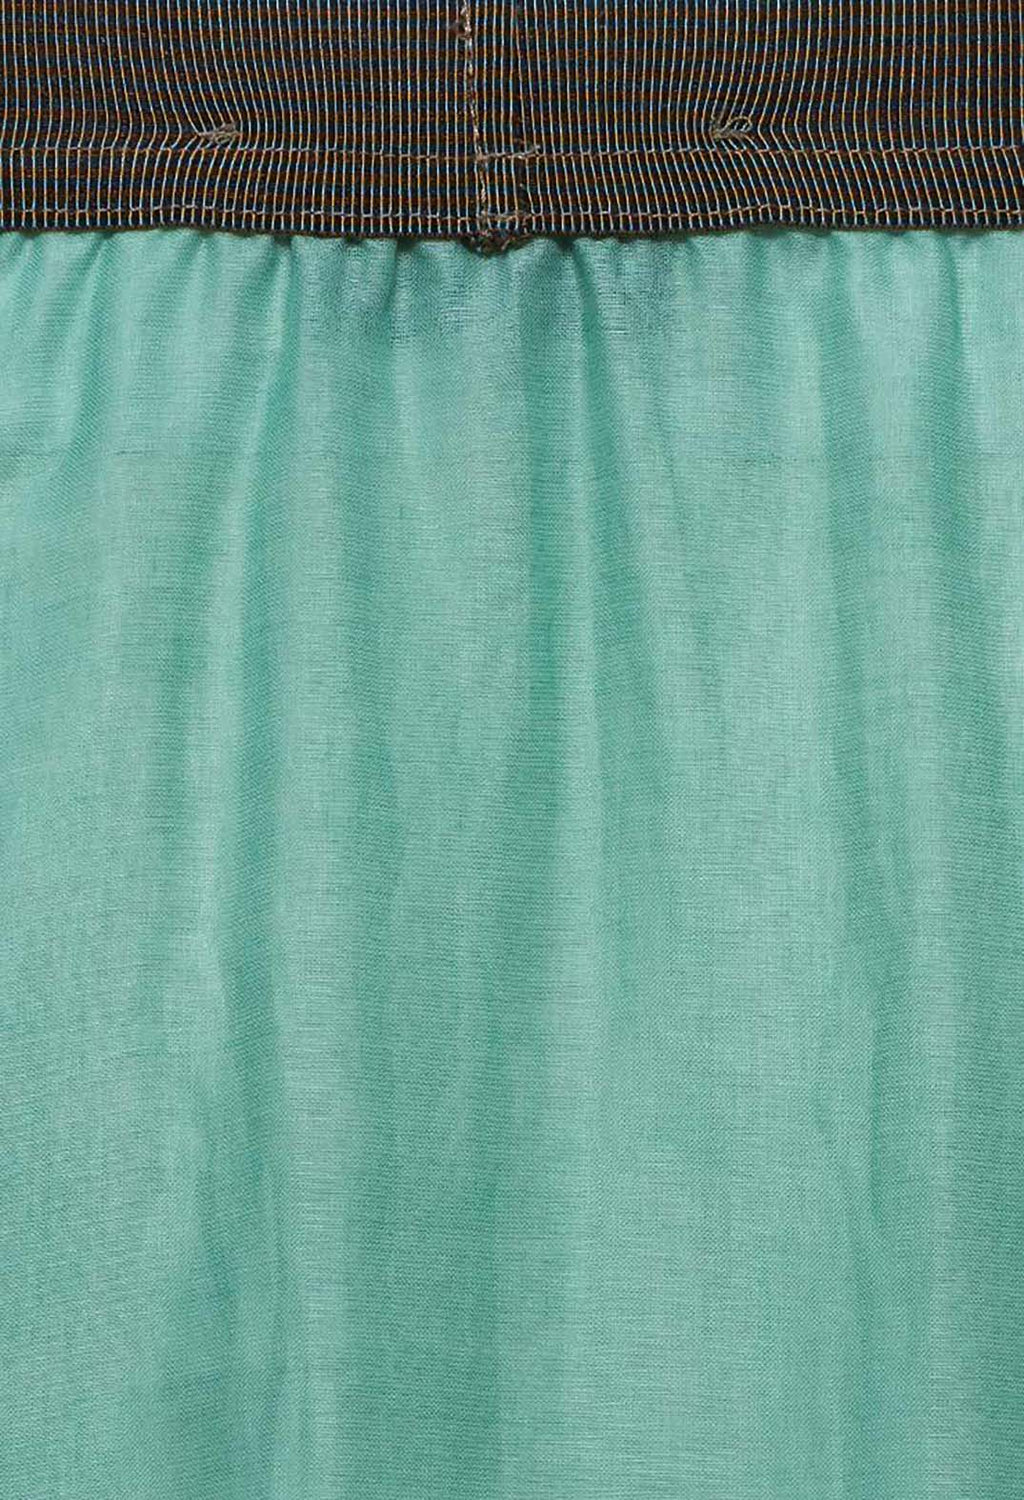 Layered Maxi Skirt with Contrast Waistband in Emerald